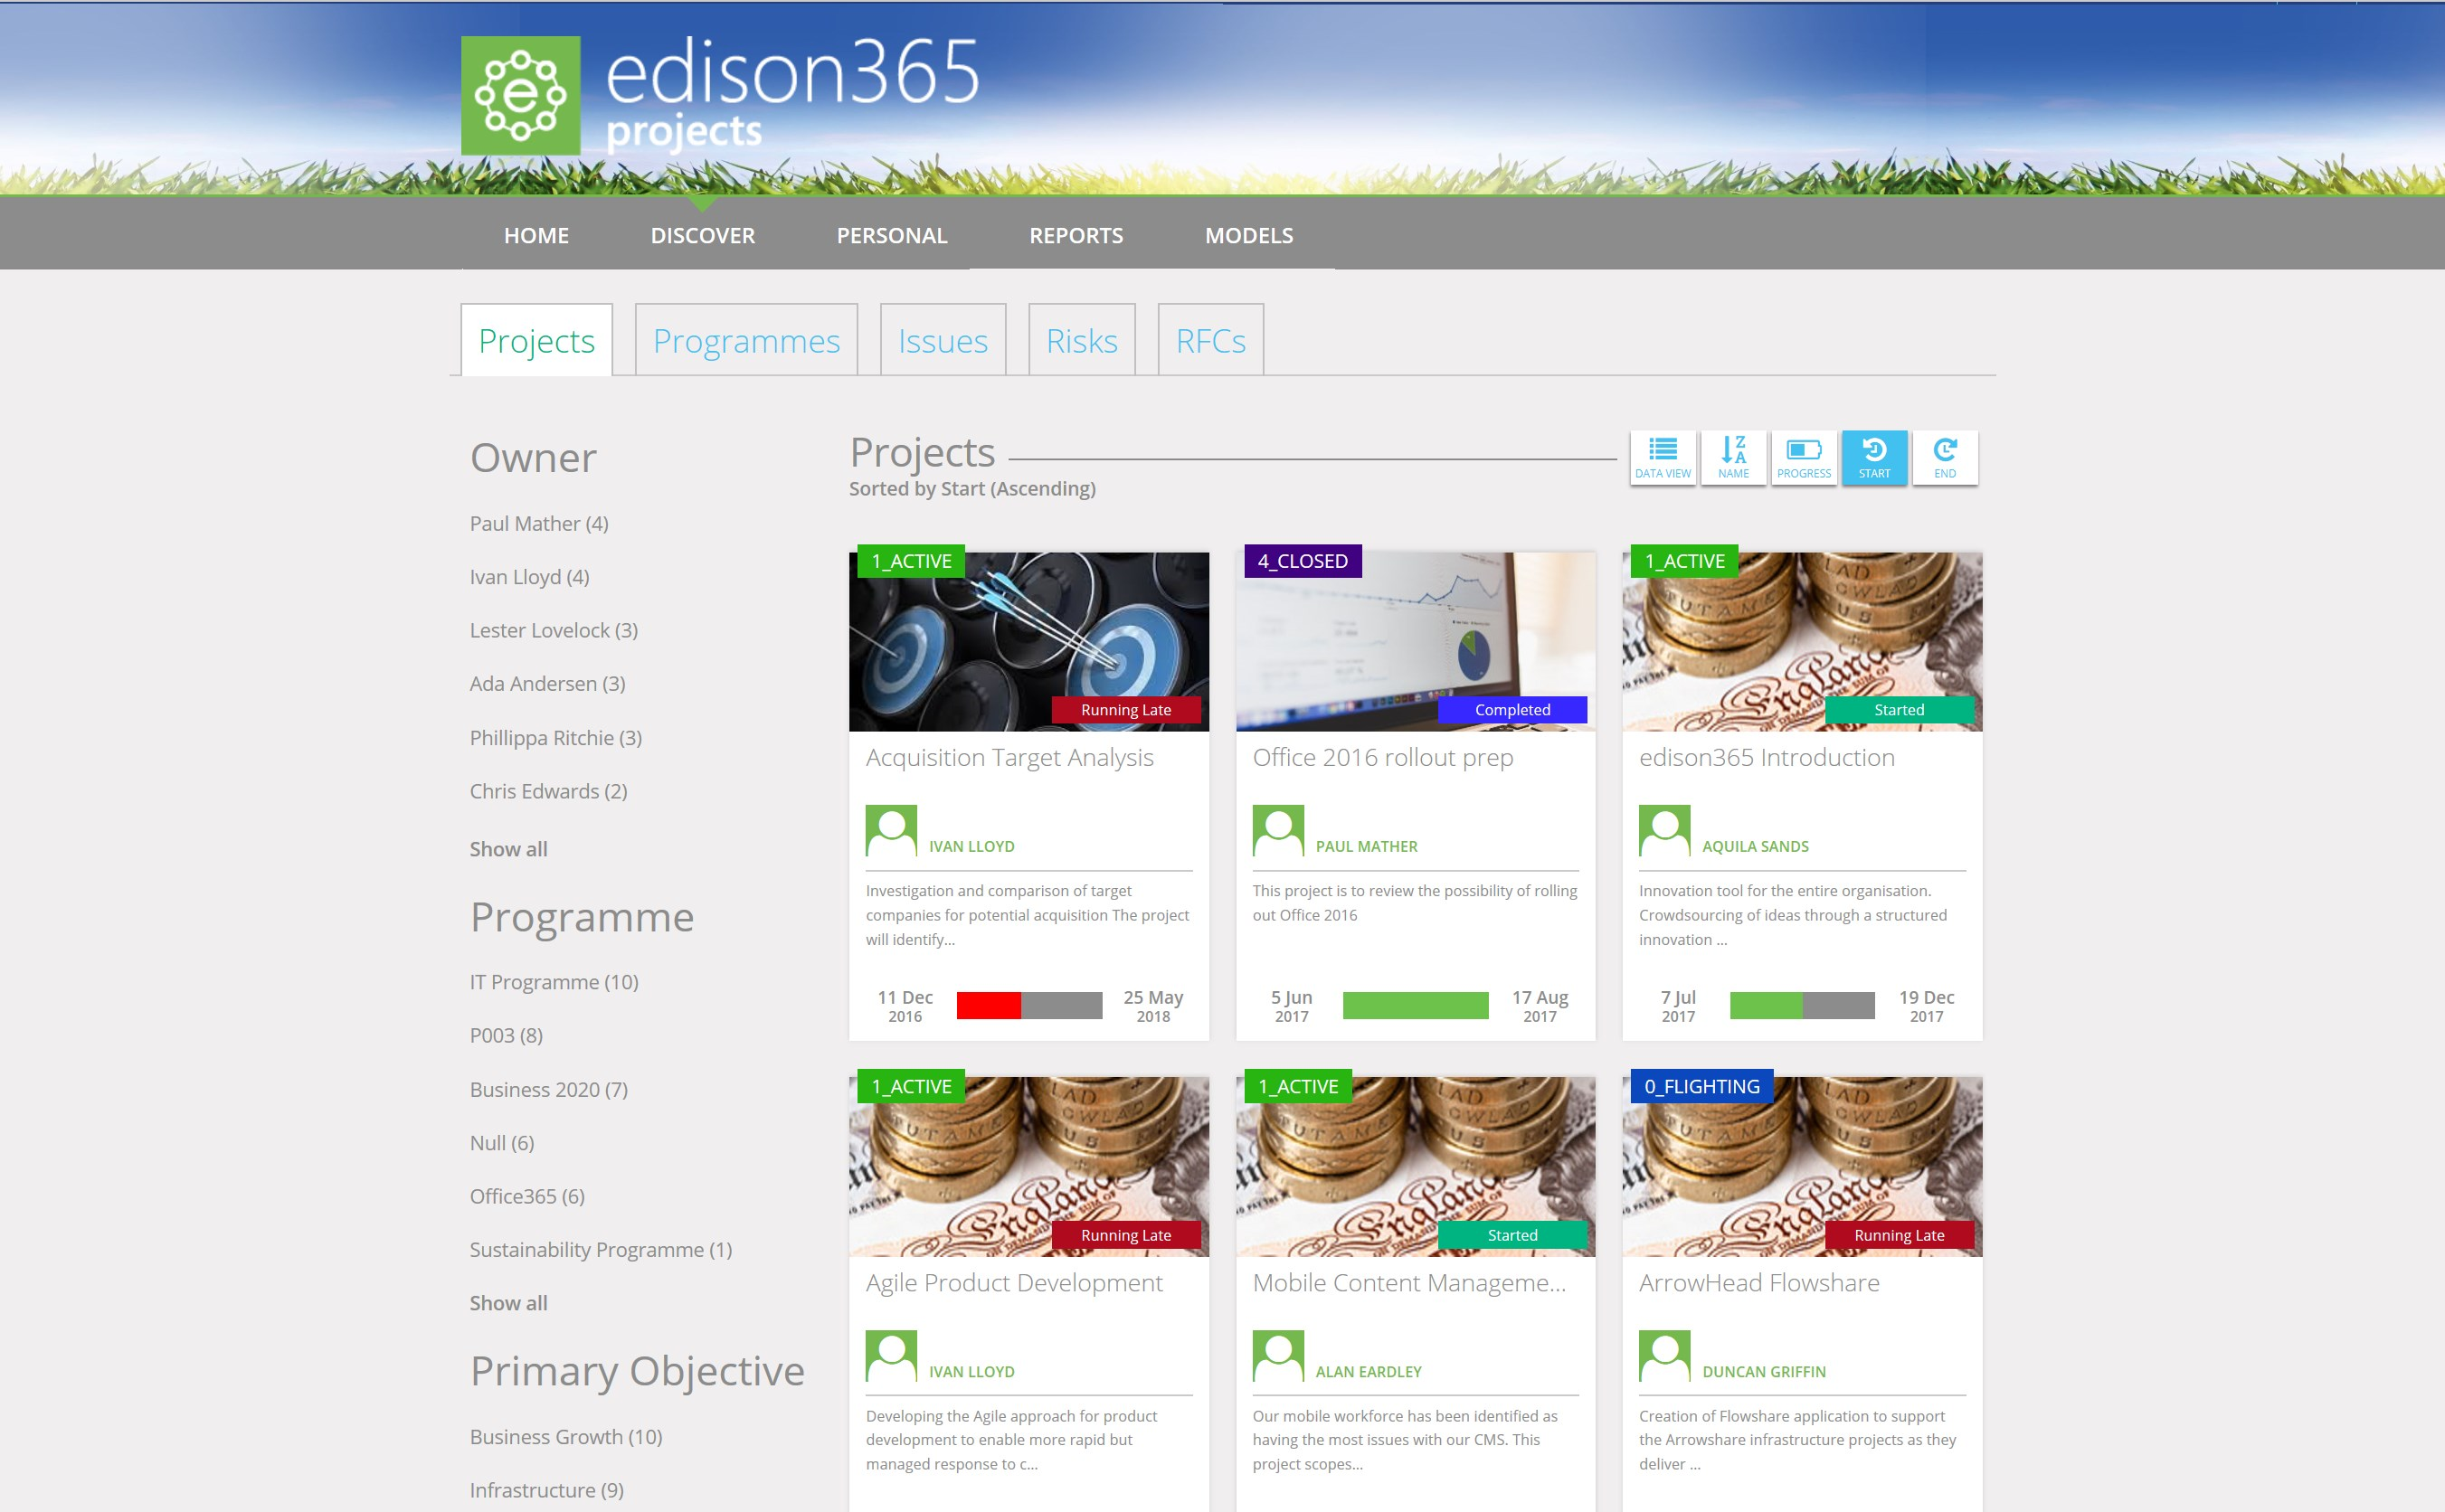 edison365projects By Corporate Project Solutions Web apps The